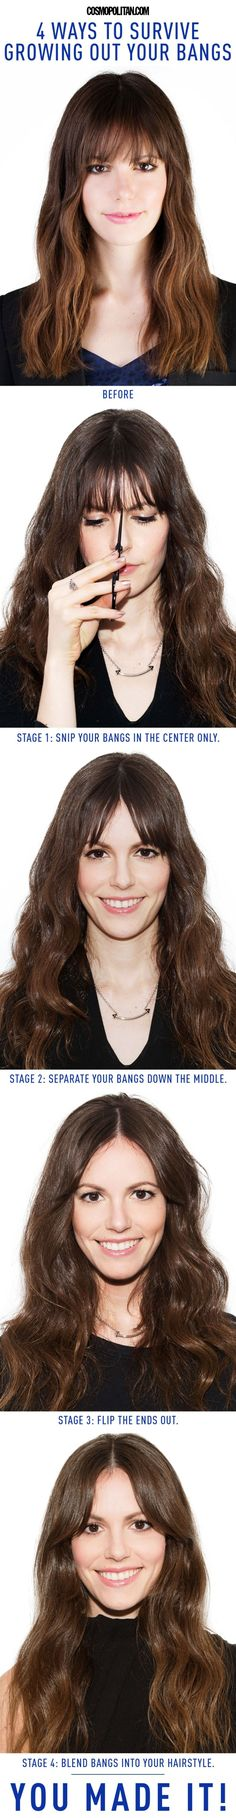 How to Grow Out Bangs - Best Hairstyles for Growing Out Your Bangs